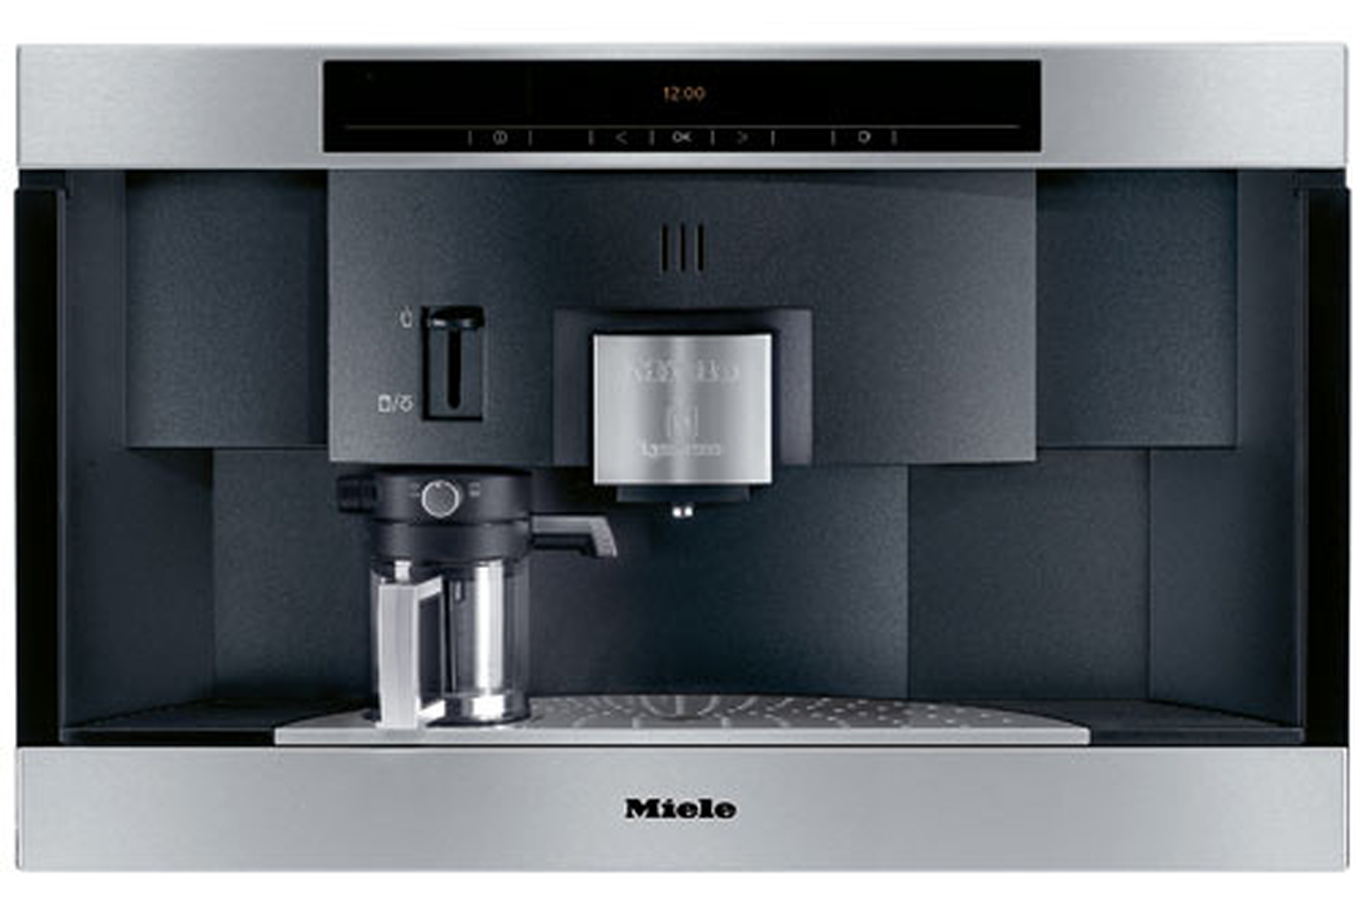 machine caf encastrable miele cva 3660 ix nespresso cva3660ixnespresso 2574055 darty. Black Bedroom Furniture Sets. Home Design Ideas